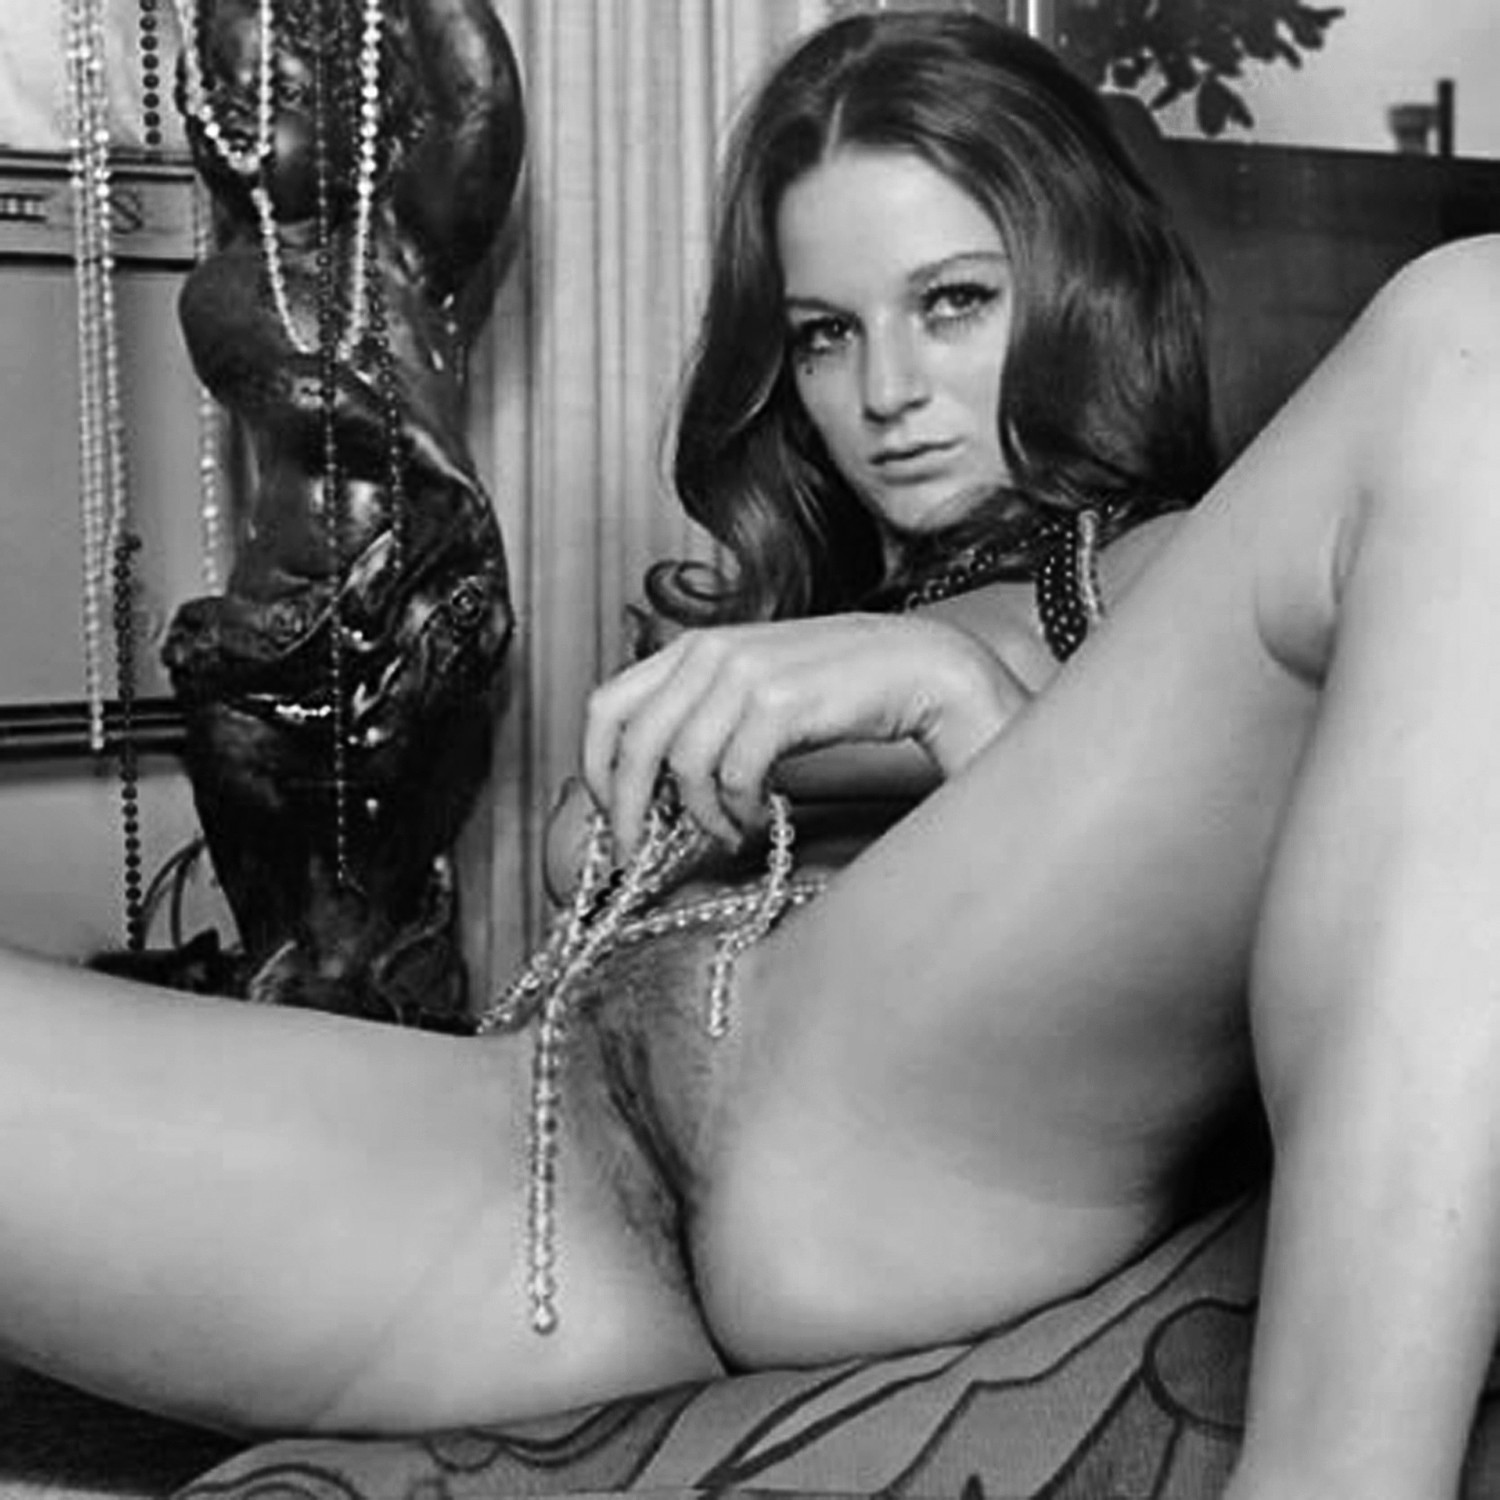 vintage german mature nudes